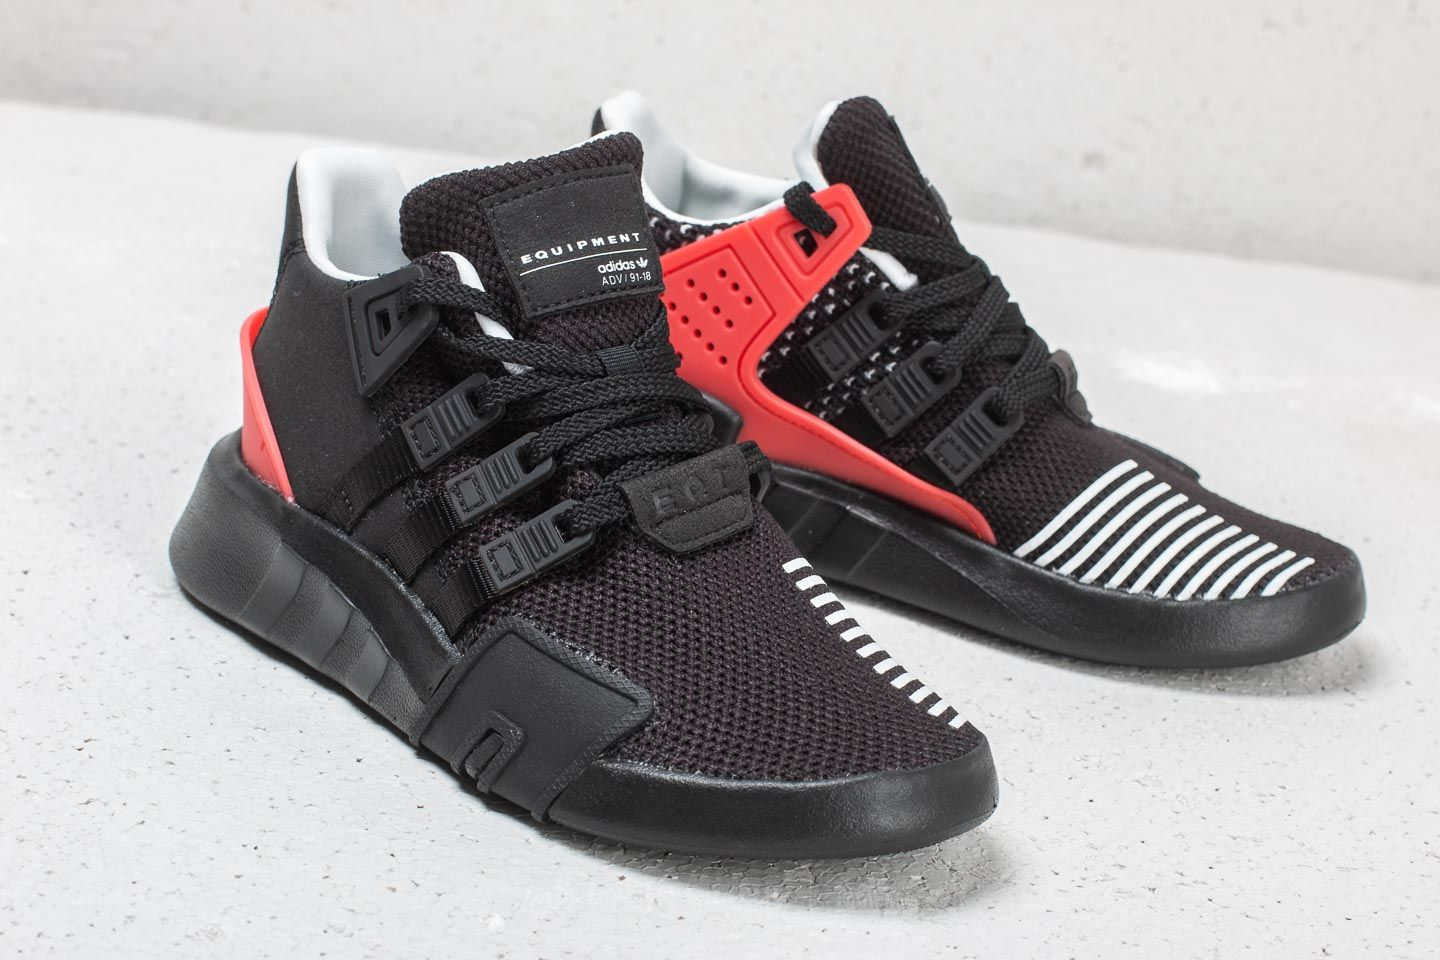 Adidas EQT Bask ADV C Core Black  Cloud White  Hi-Res Red at f887a8798